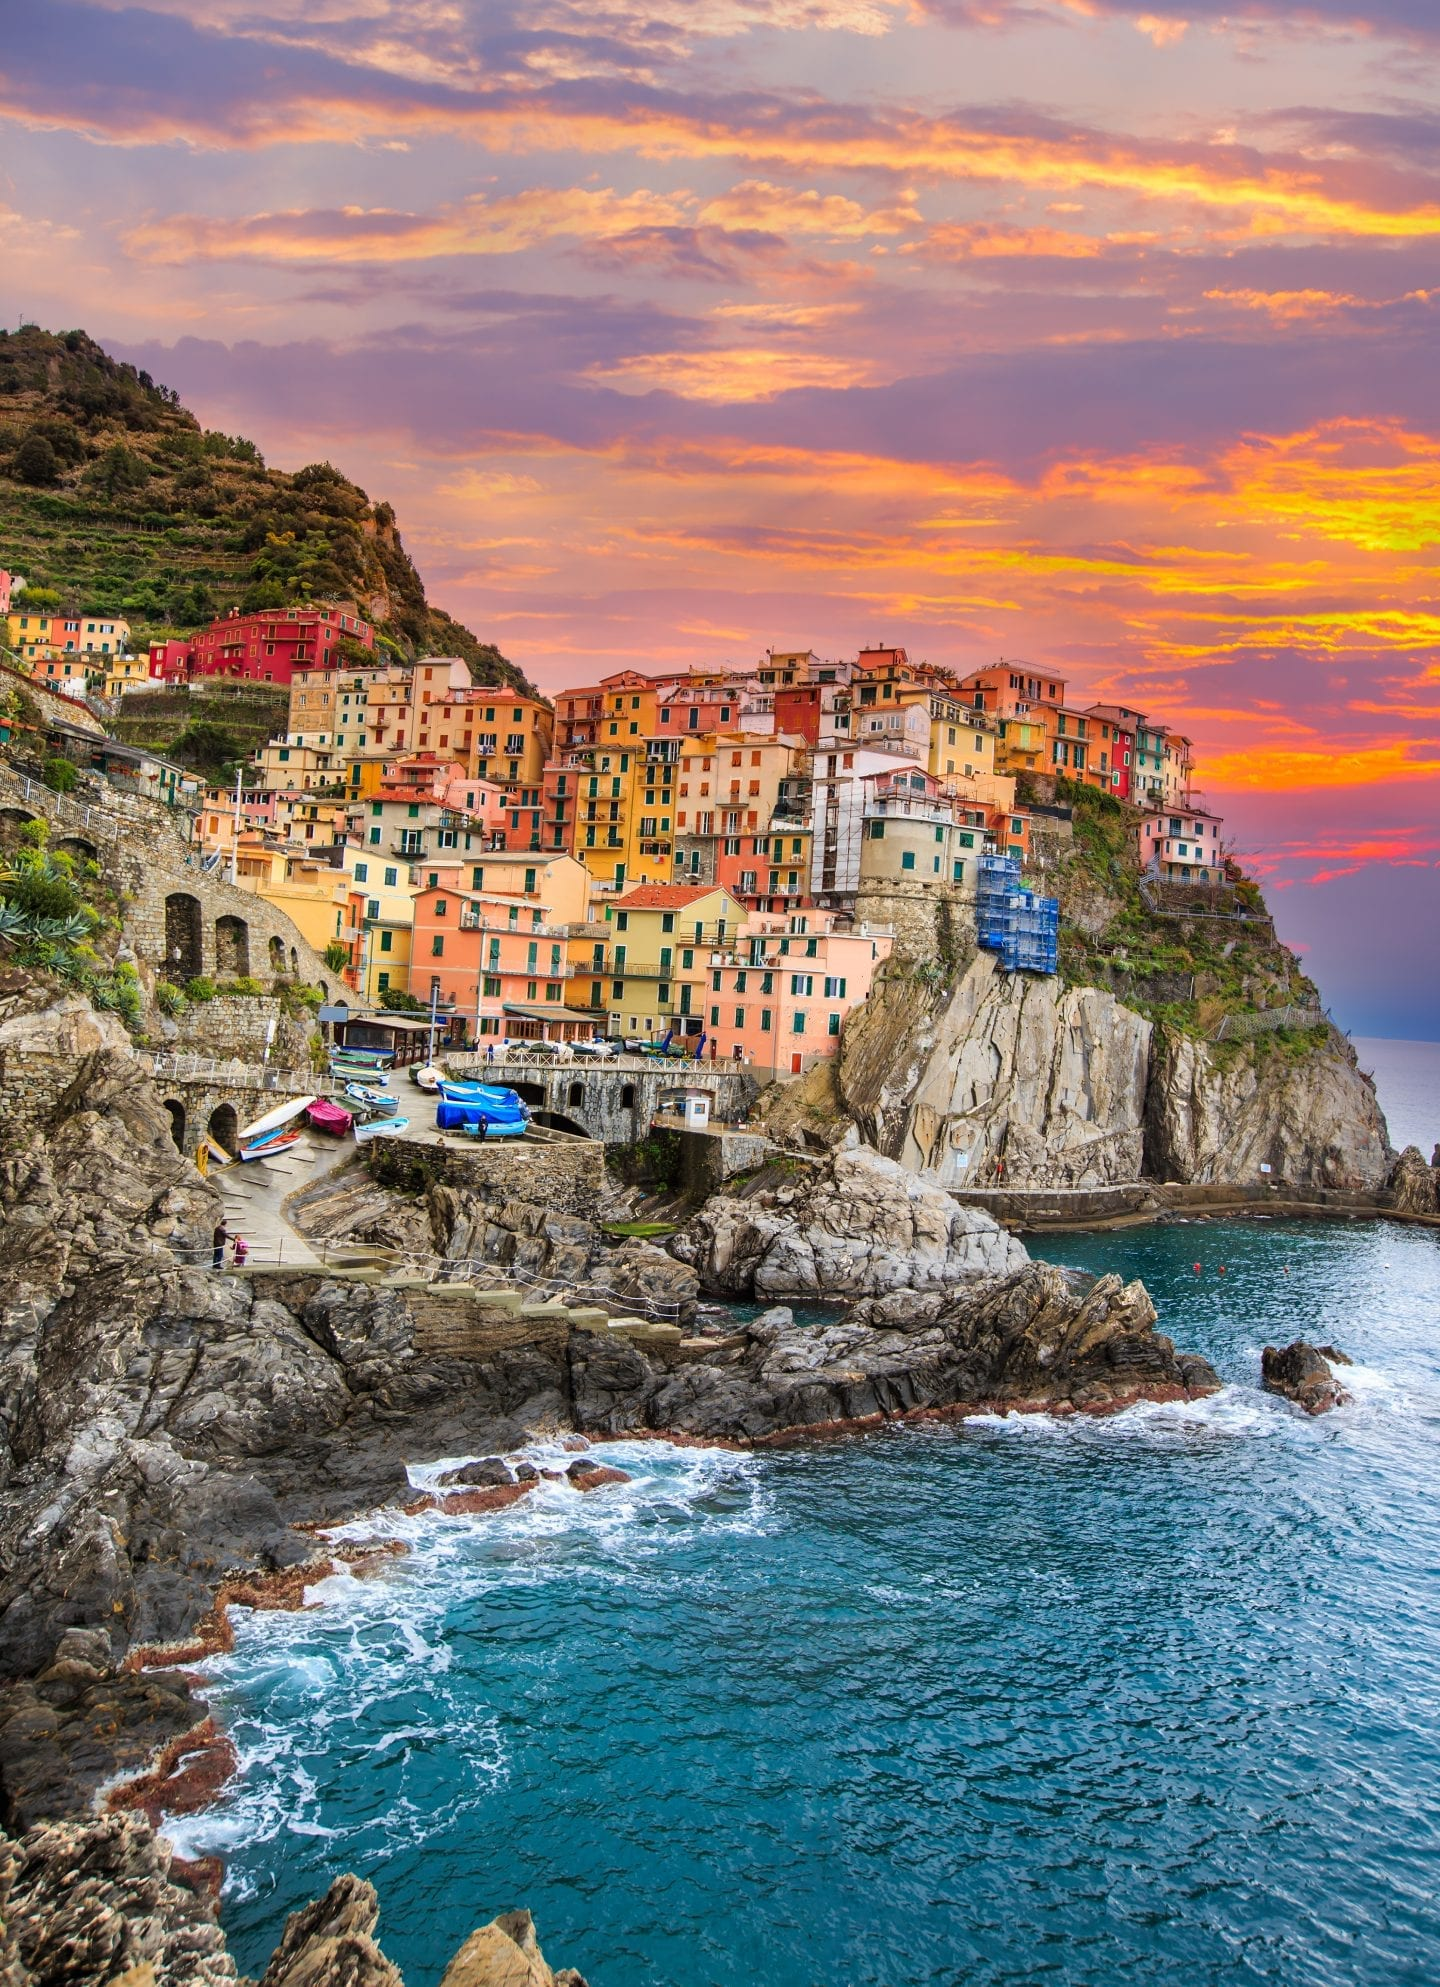 European bucket list destination, Cinque Terre Italy.